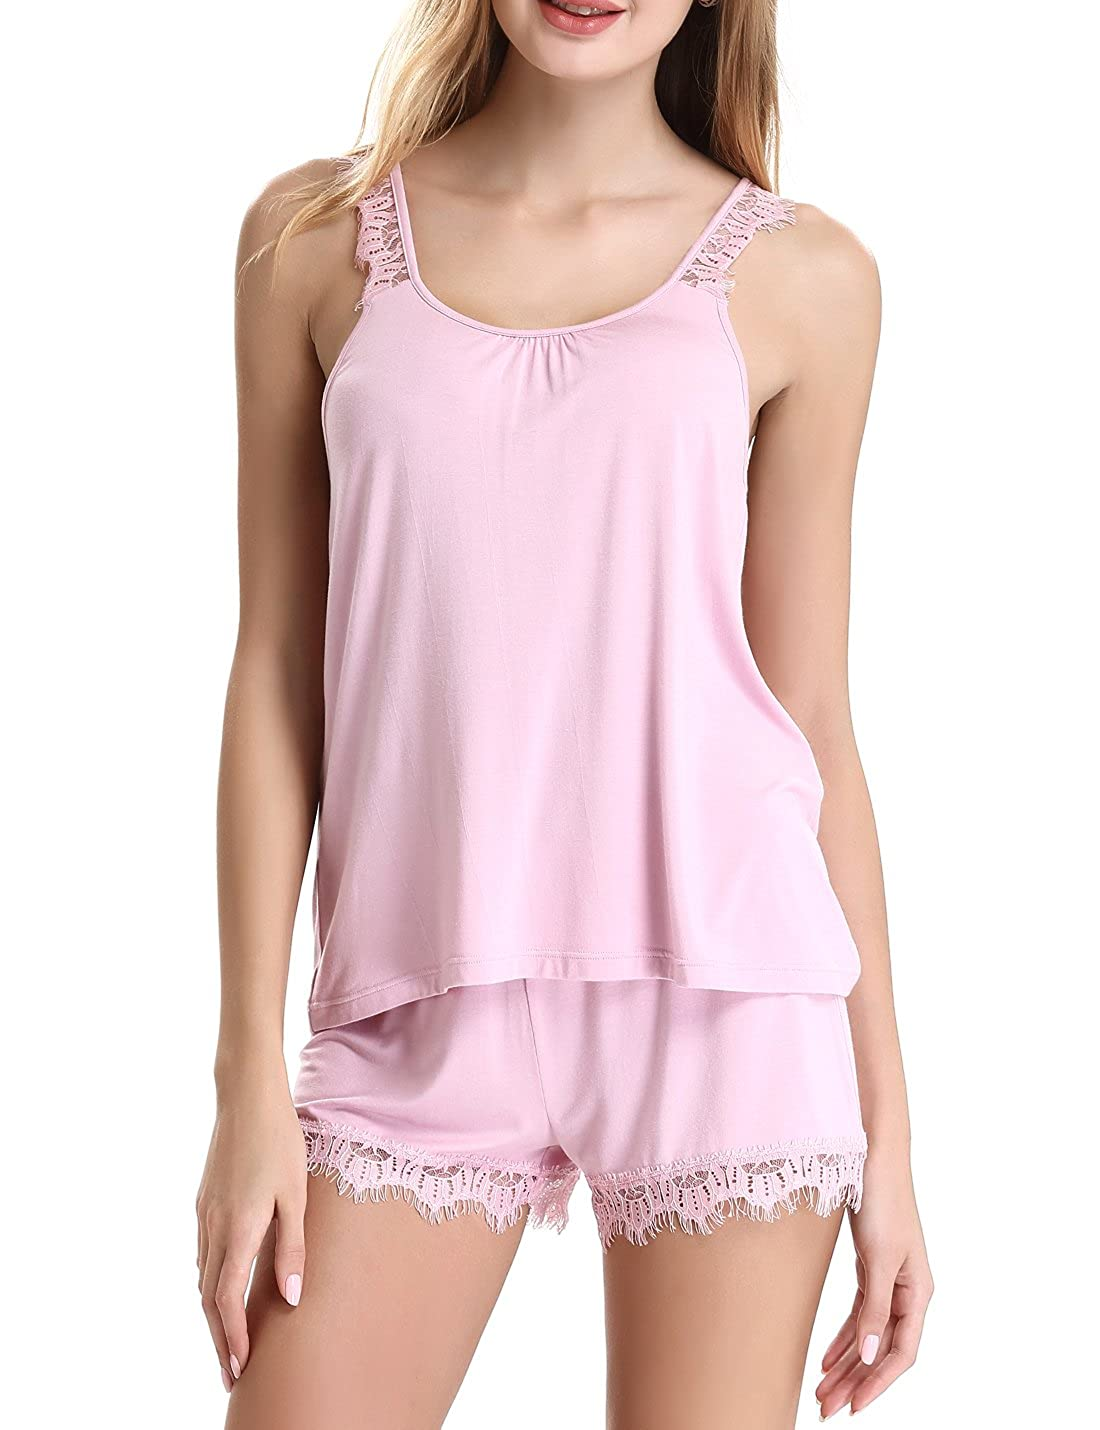 NORA TWIPS Womens Lace Sleepwear Sleeveless Pajama Set with Short Pants by (XS-XL) *OY011